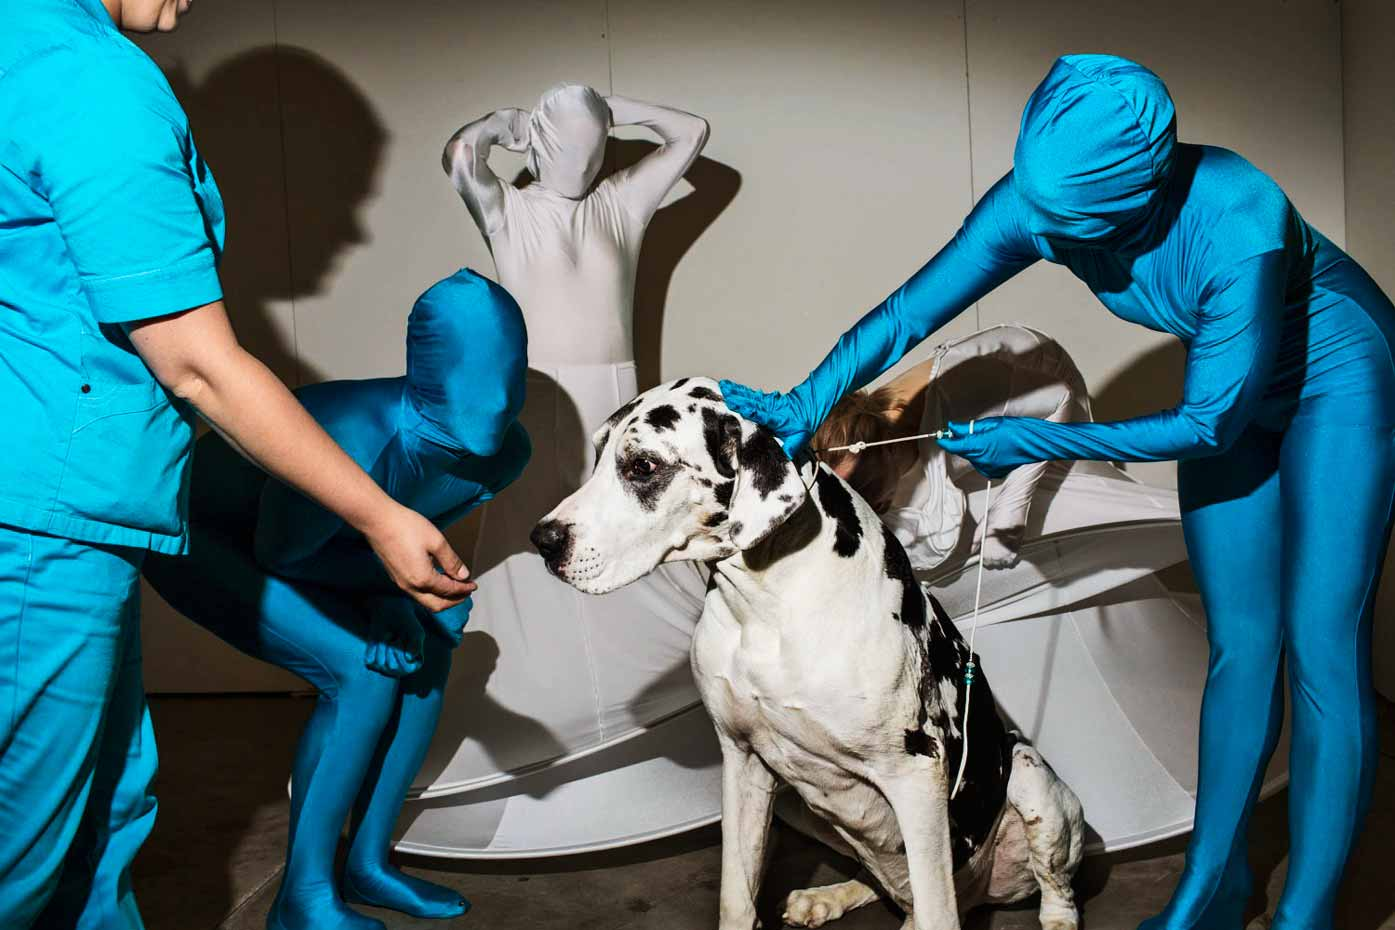 Kaapo, a Great Dane, meets performers from the Helsinki dance group High Heels